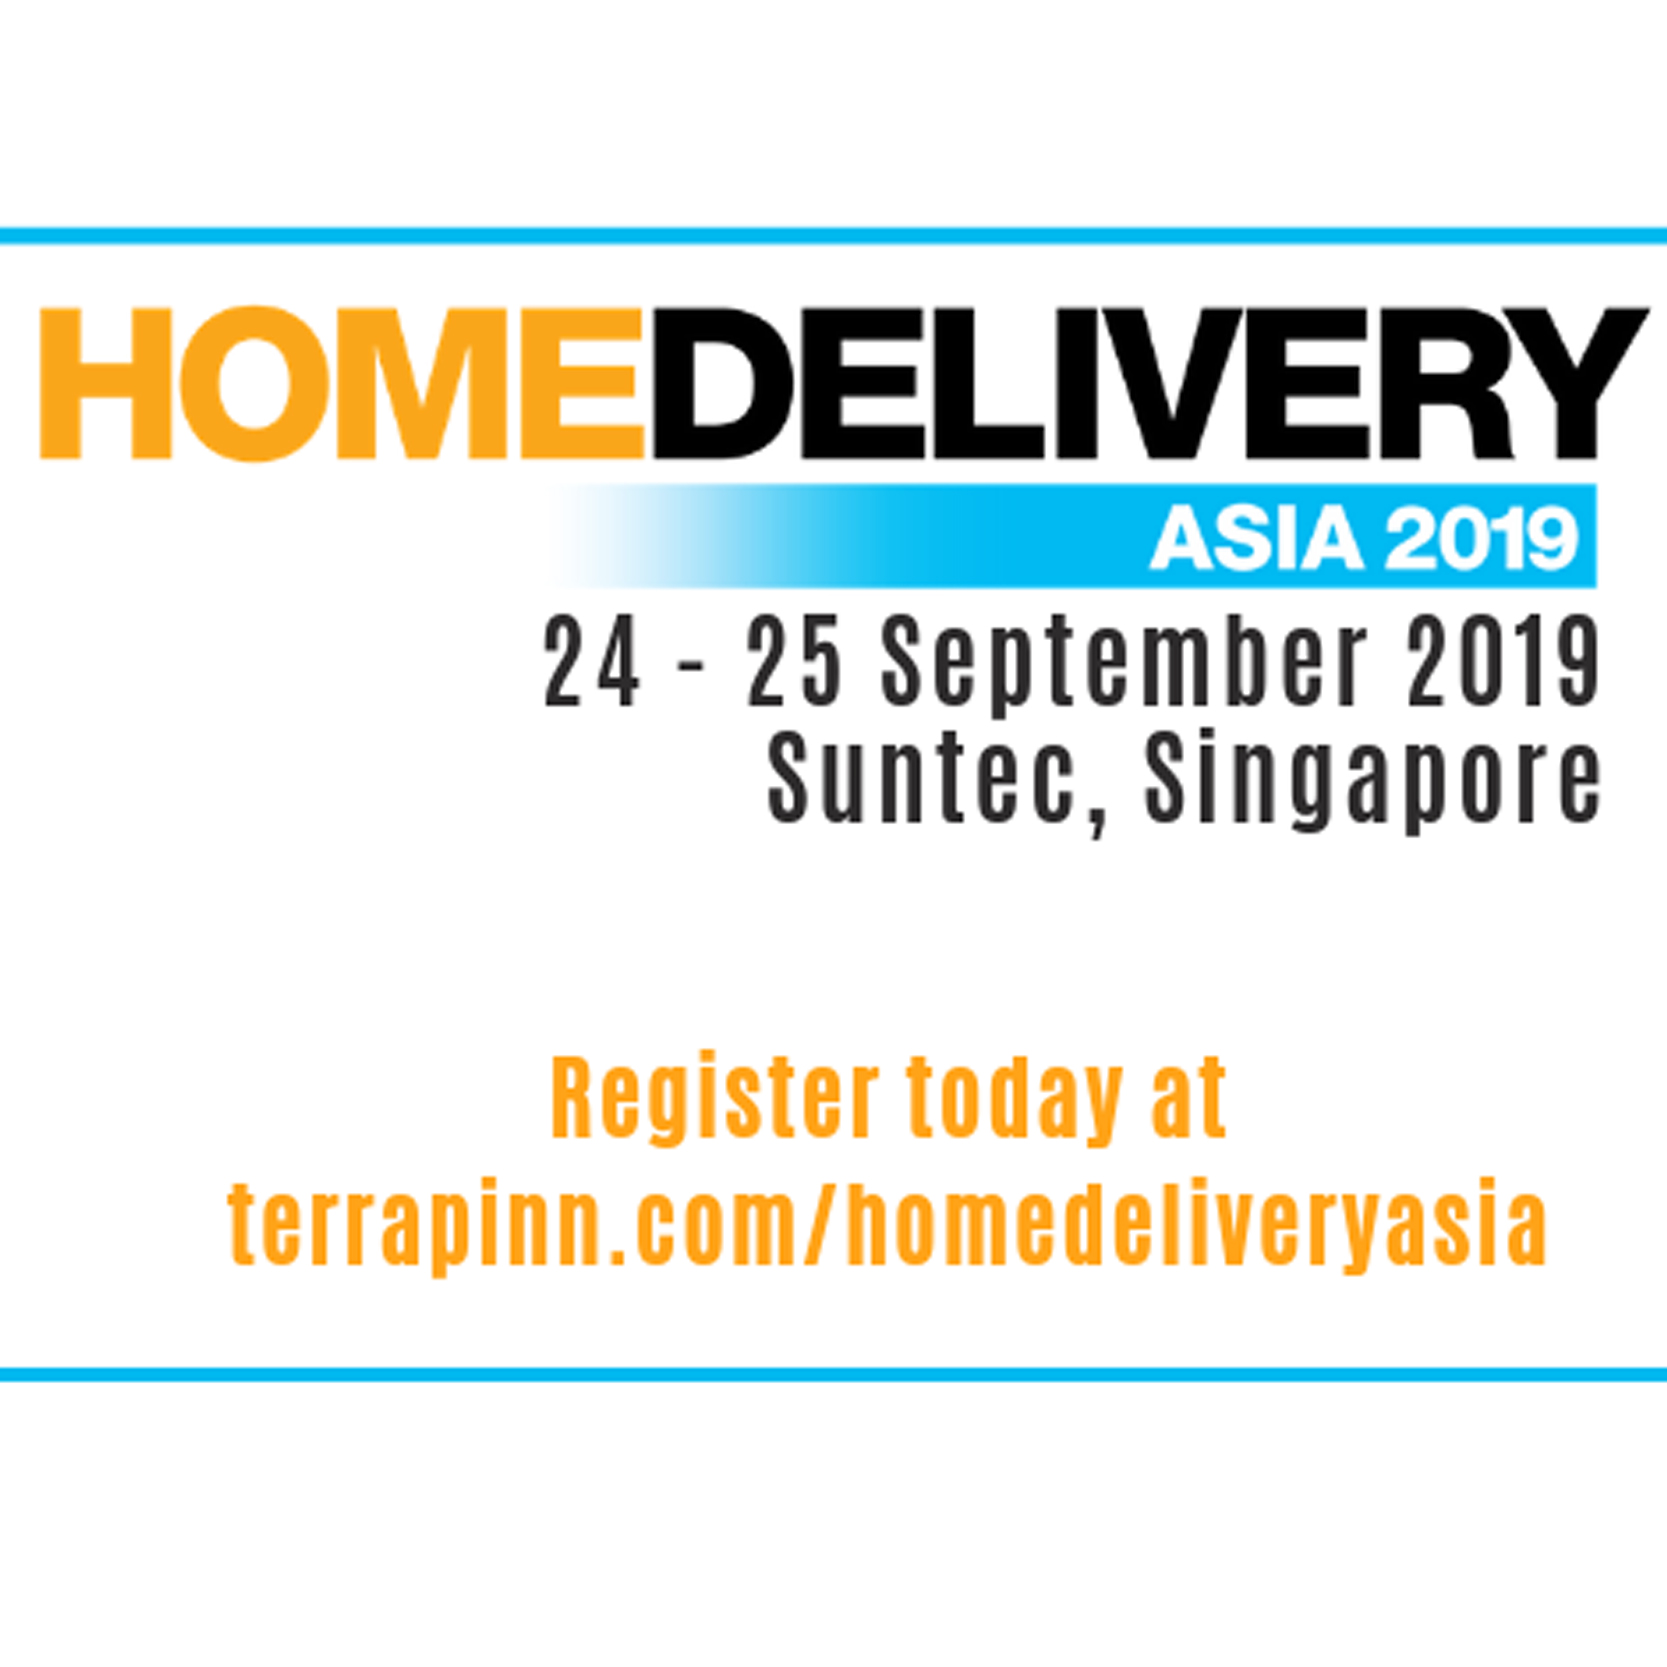 Sep 24-25 Singapore - HOME DELIVERY ASIA 2019